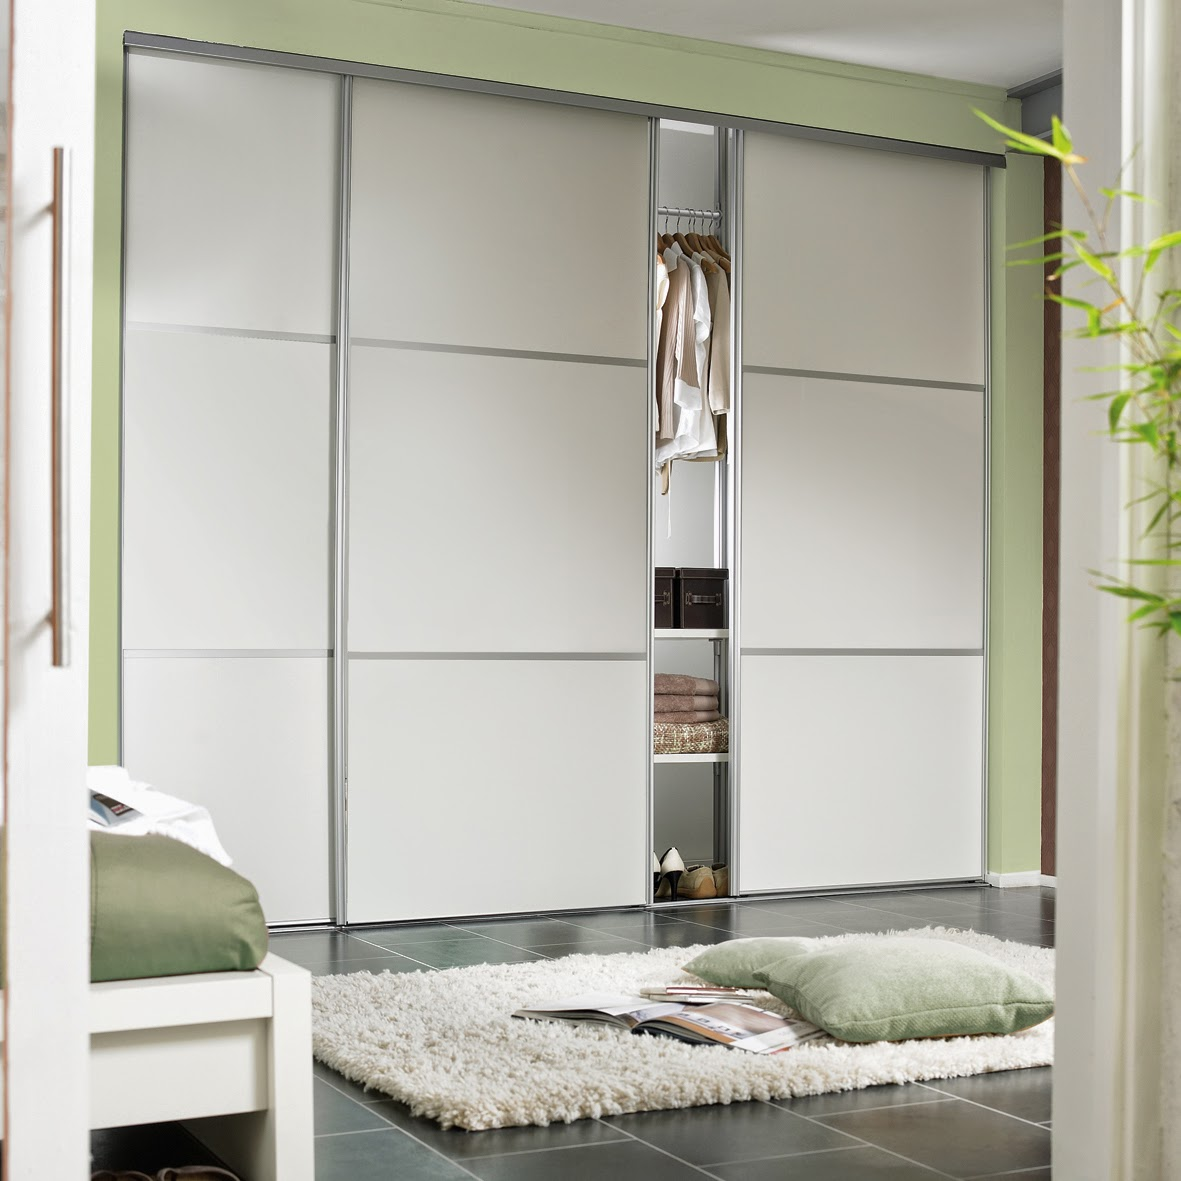 Bedrooms Plus Sliding Wardrobe Doors and Fittings: How to ...